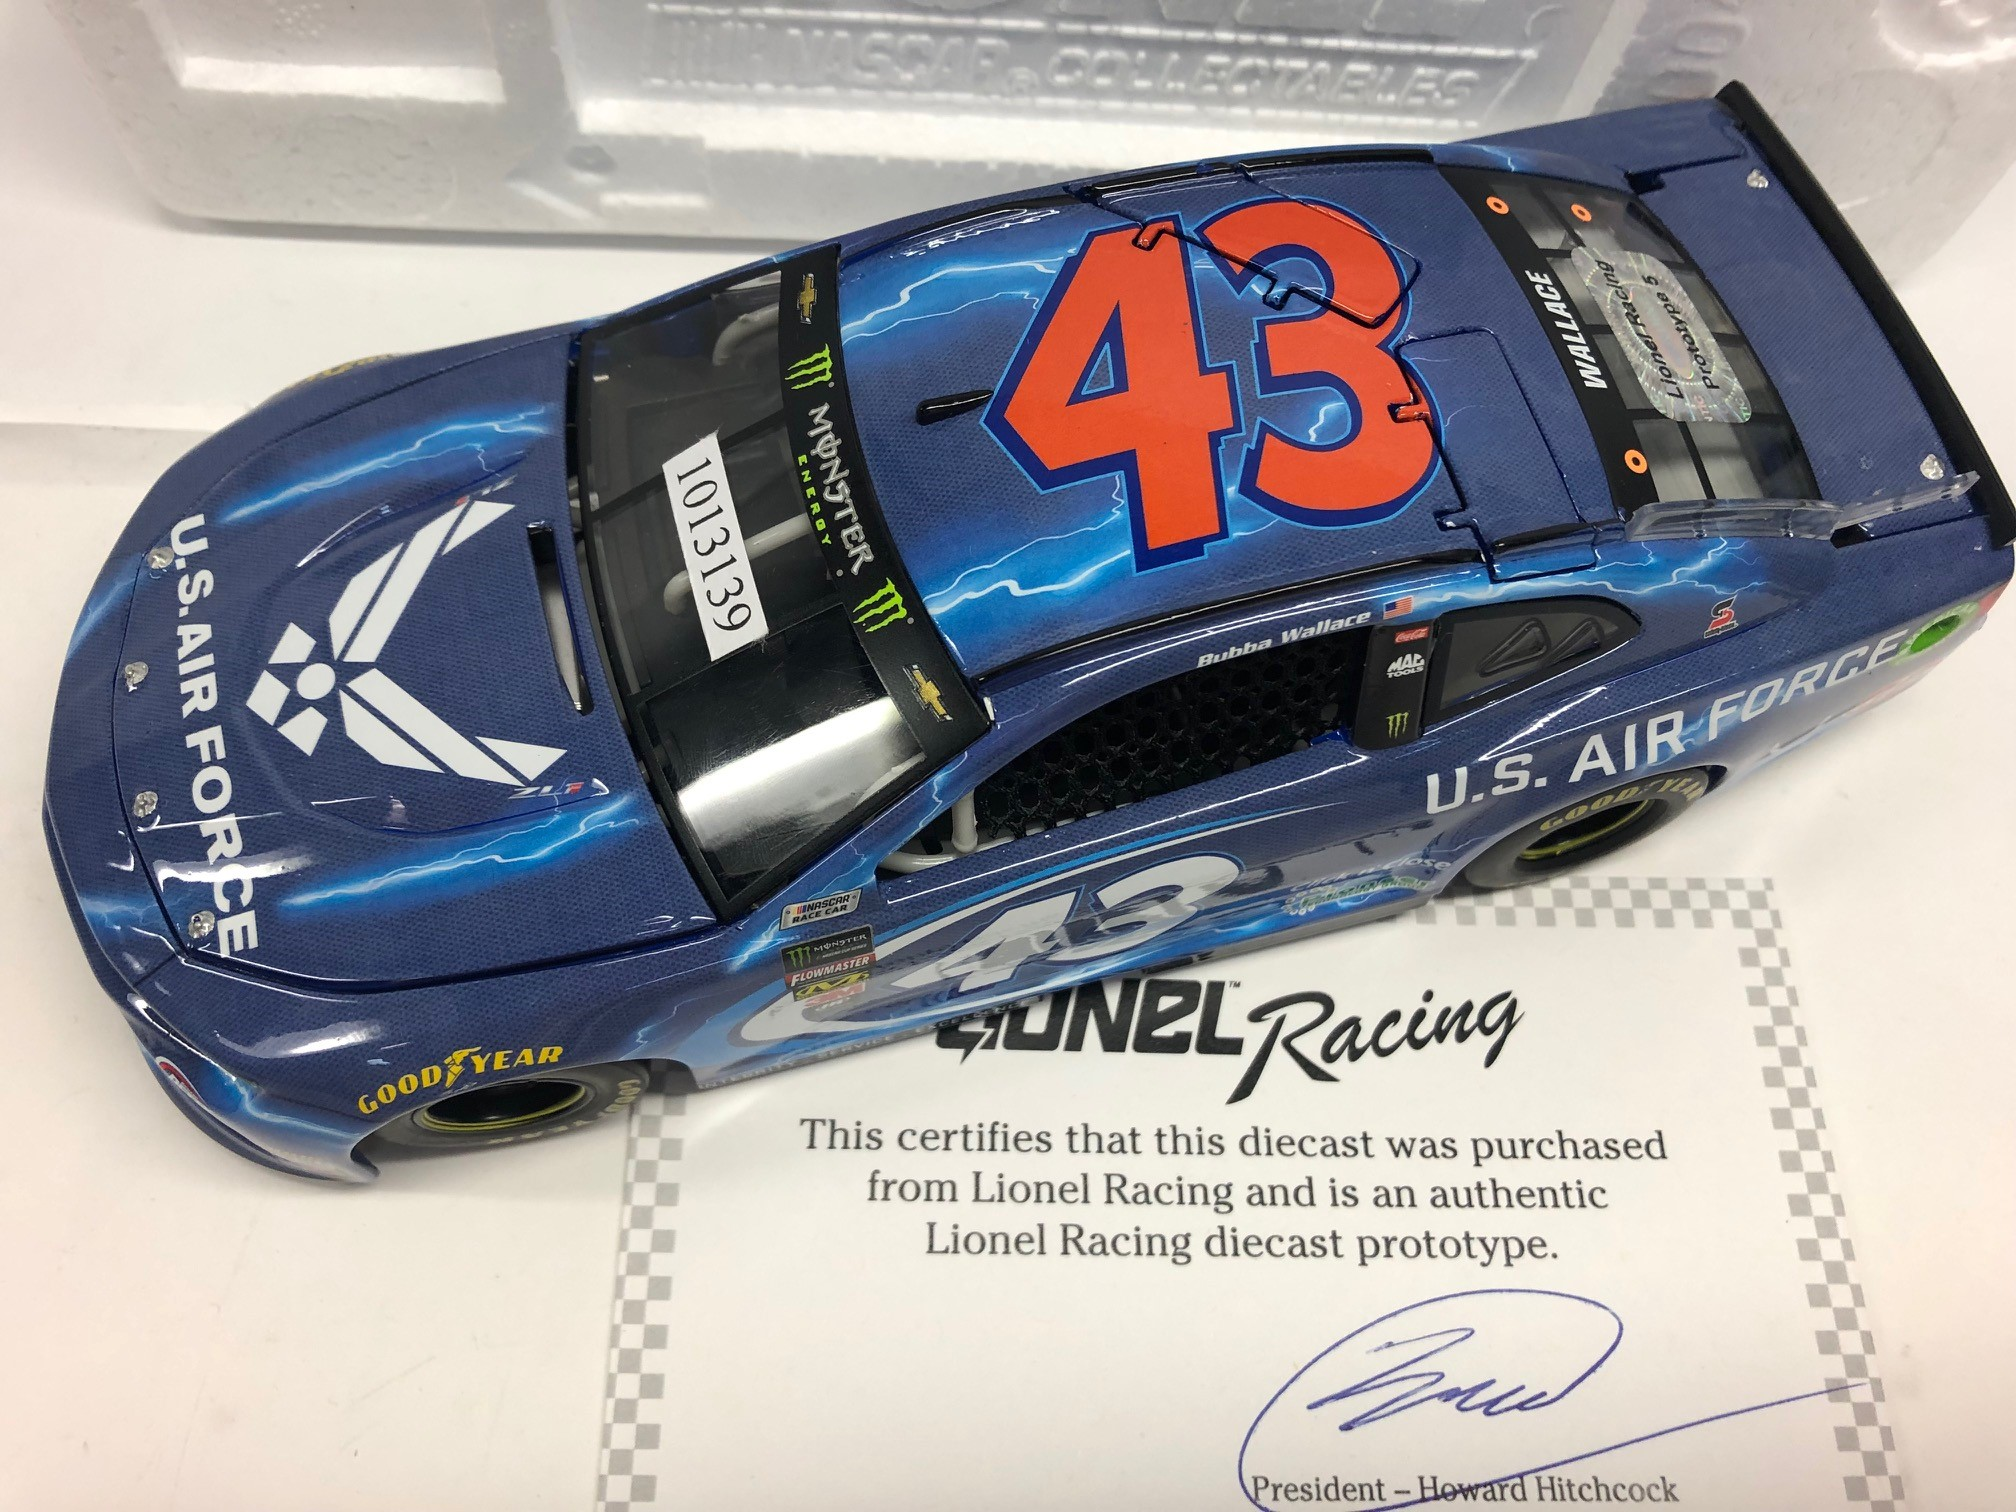 Lionel Racing Bubba Wallace 2018 Air Force 1:24